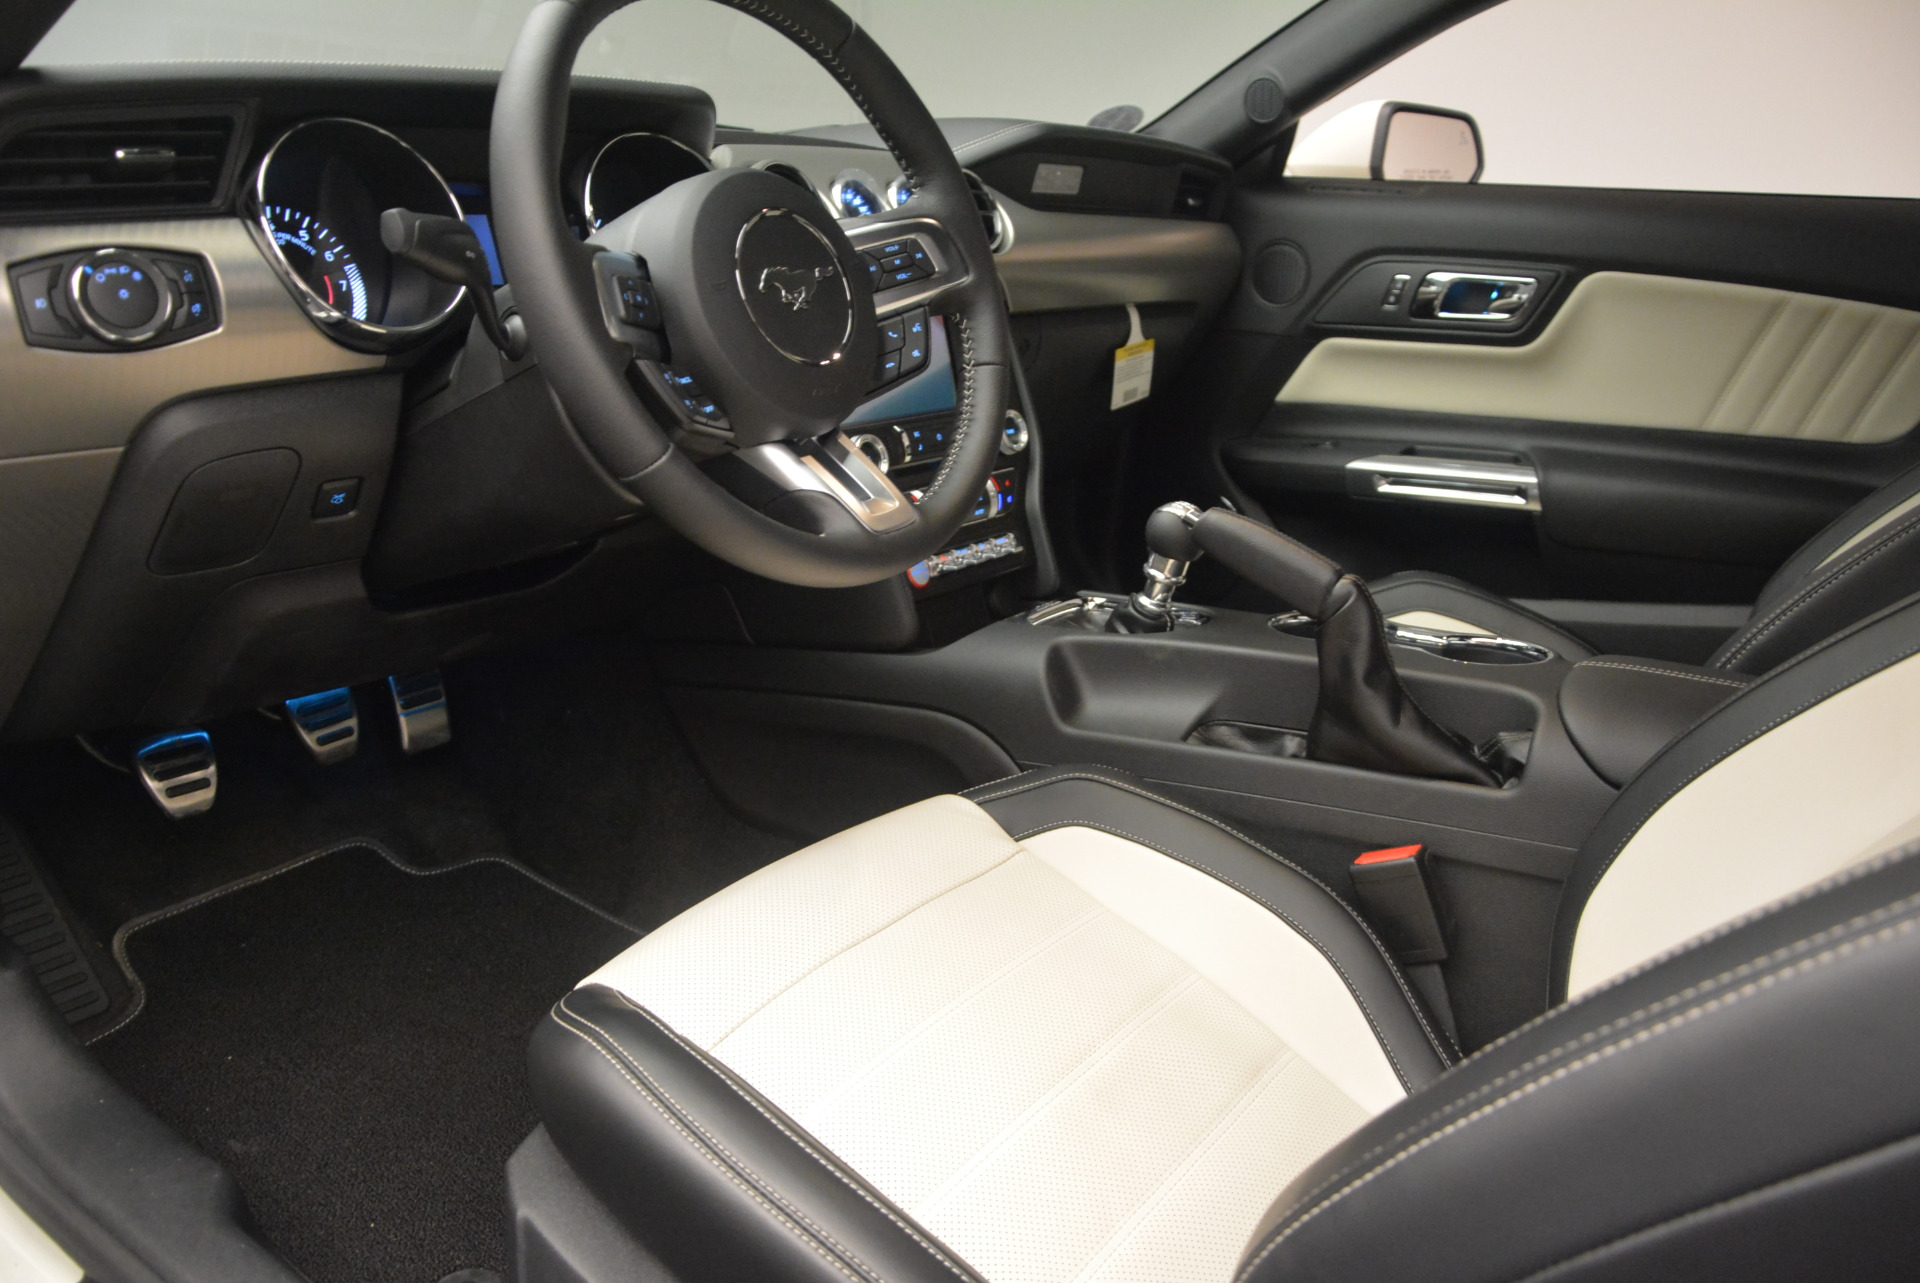 Used 2015 Ford Mustang GT 50 Years Limited Edition For Sale In Greenwich, CT 1793_p13